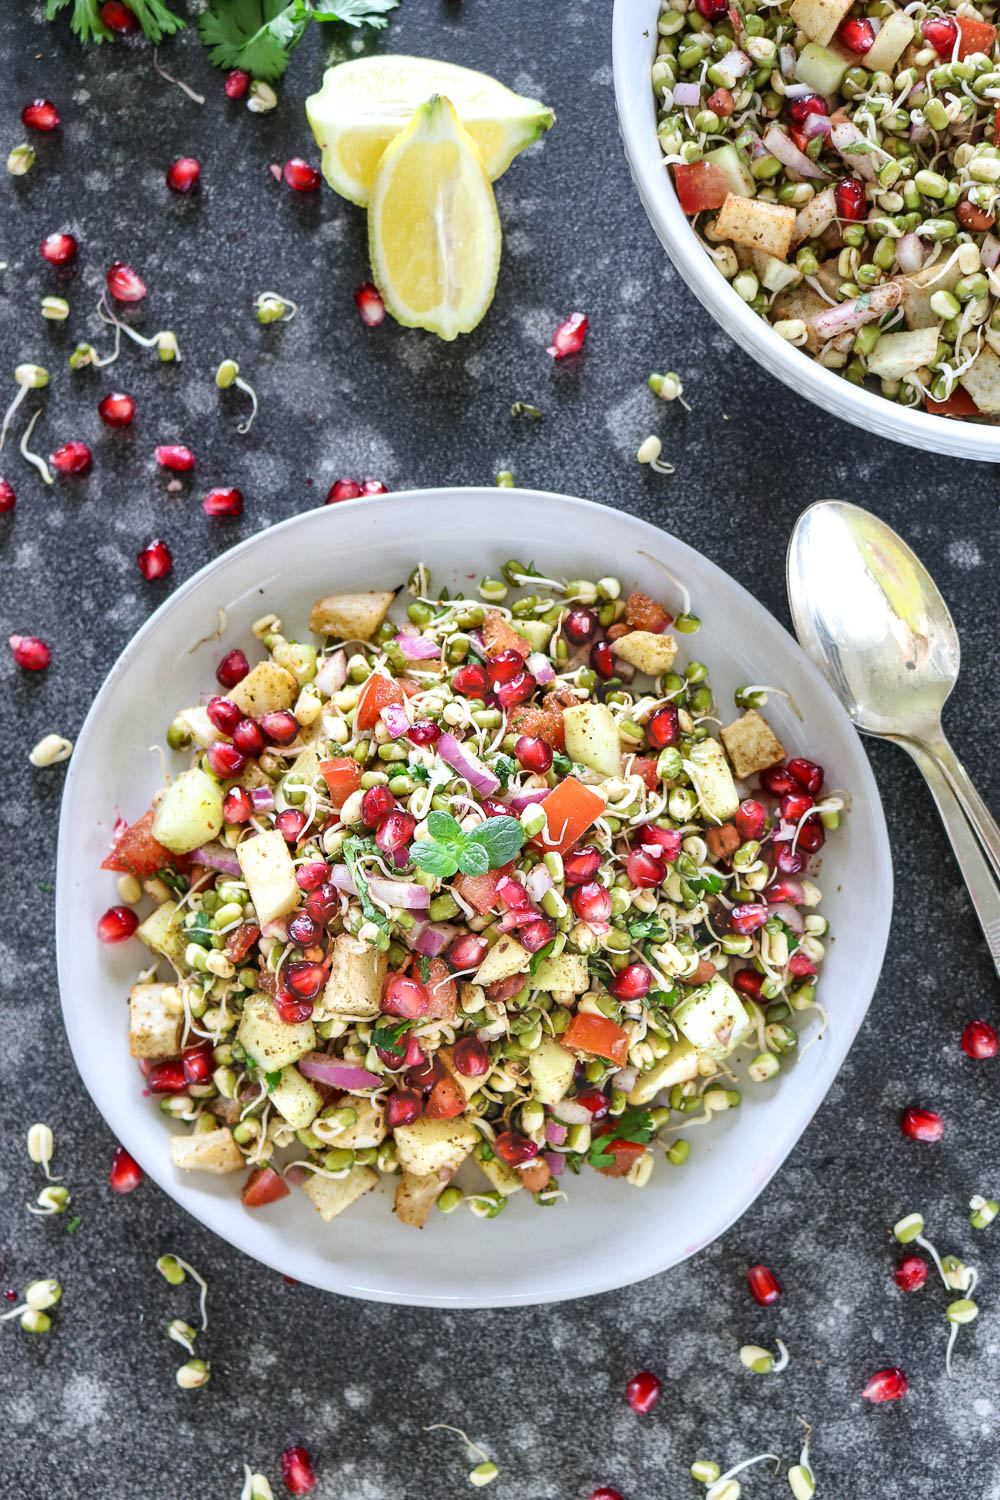 Healthy Moong Bean sprouts salad - Ruchiskitchen